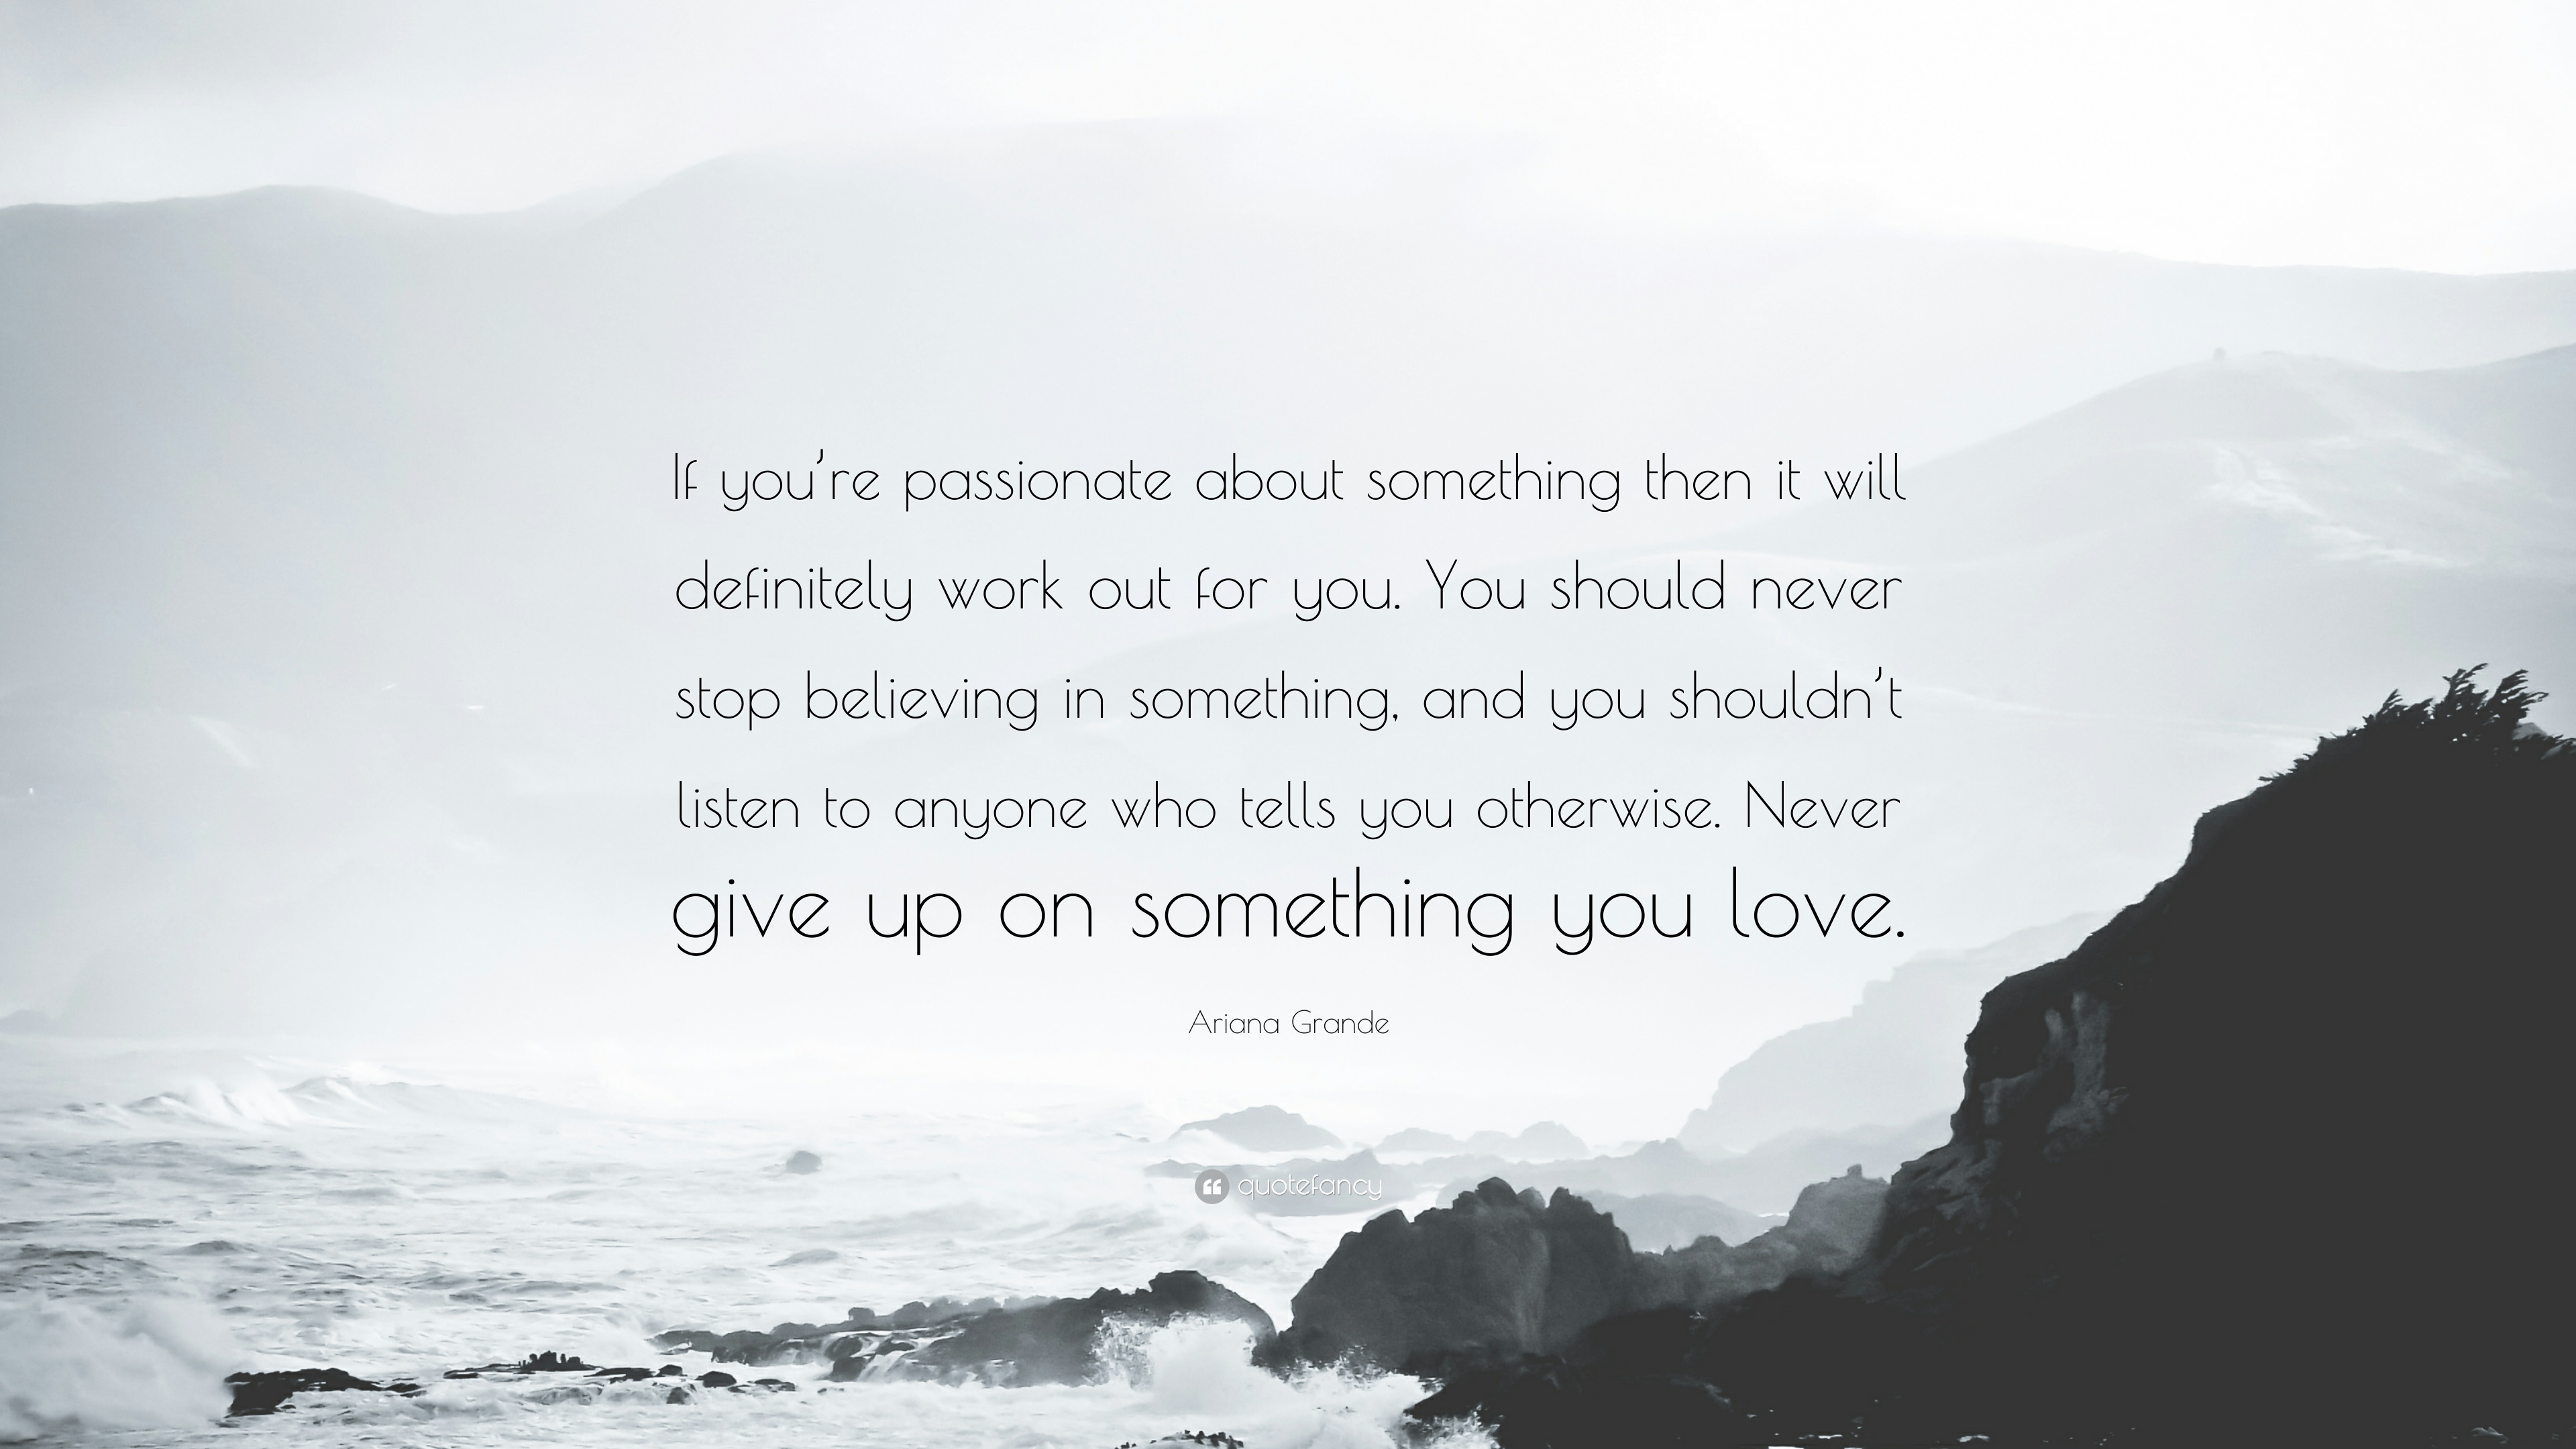 ariana grande quote if you re passionate about something then it ariana grande quote if you re passionate about something then it will definitely